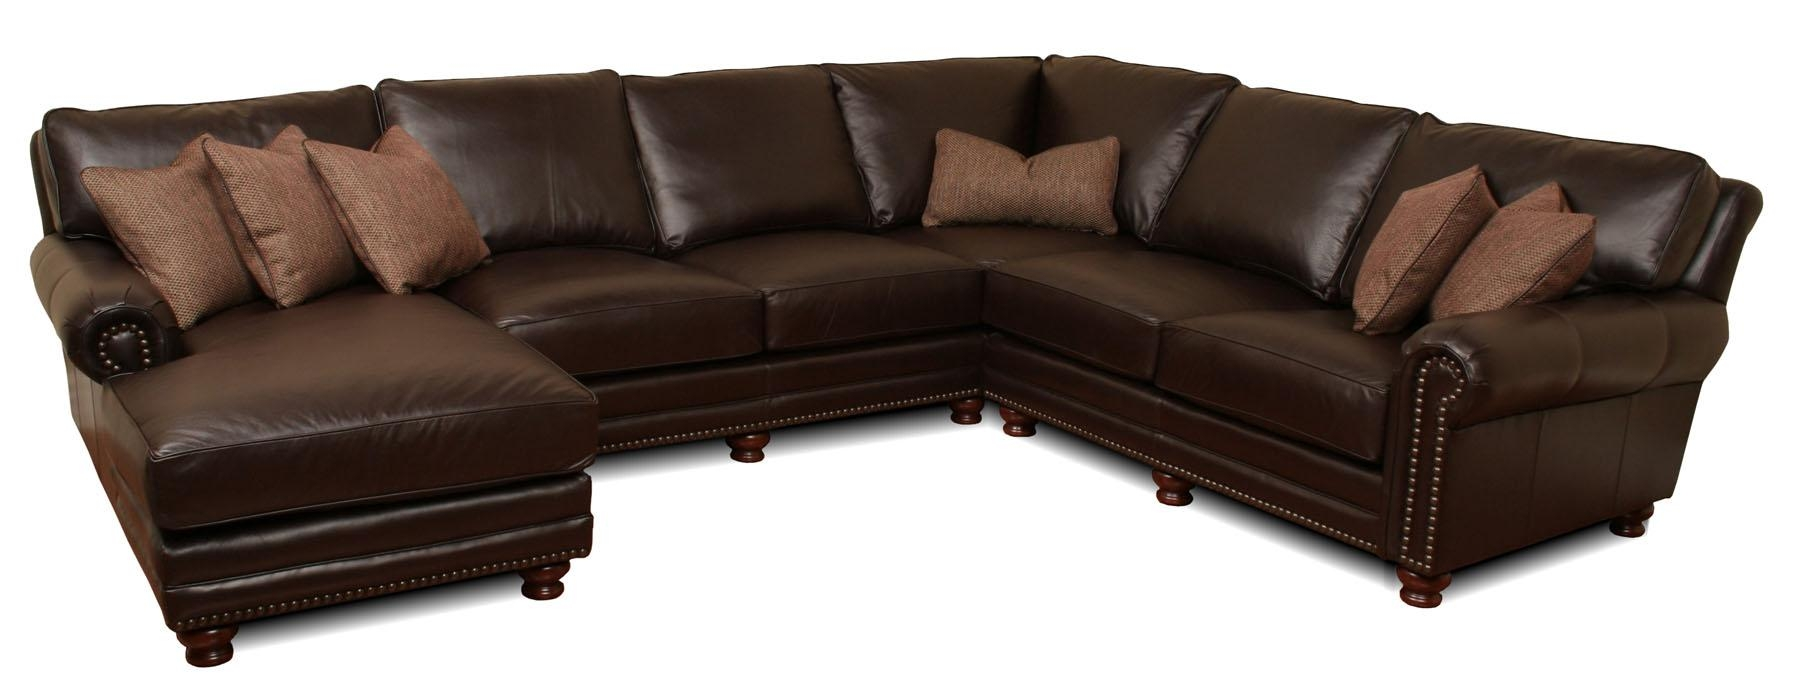 Kingston – Deep Leather Sectional | Leather Creations Furniture With Custom Leather Sectional (Image 10 of 15)